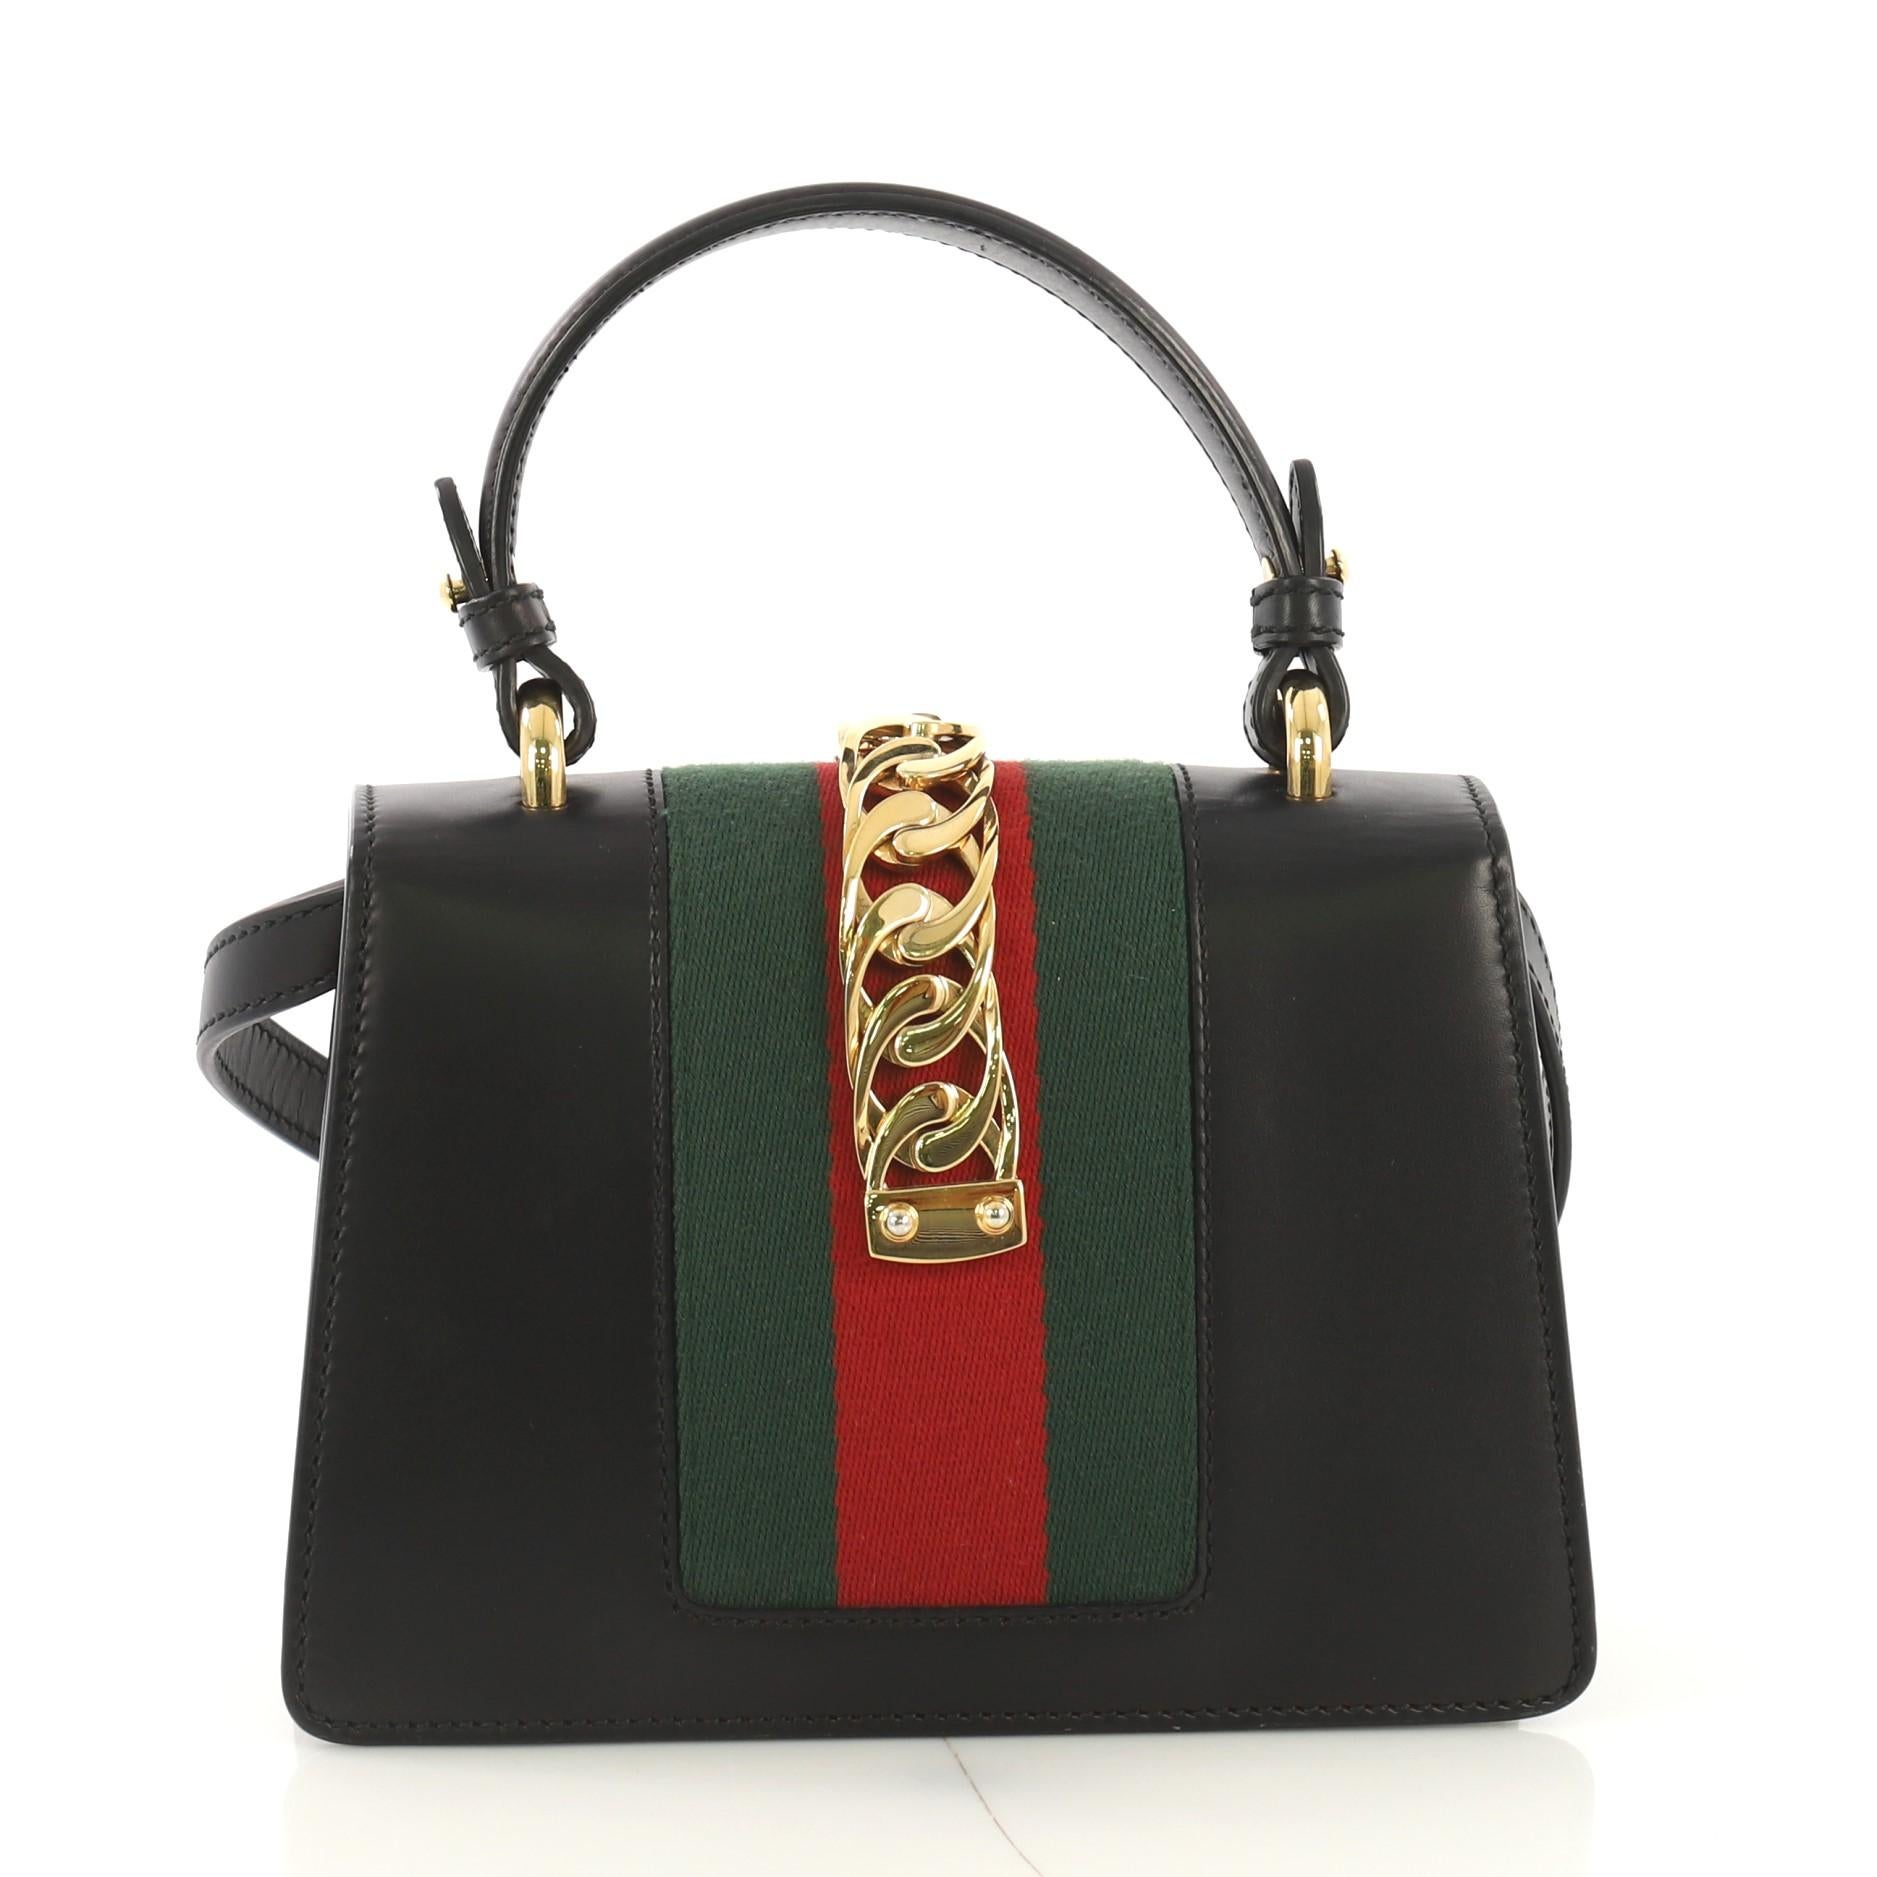 9c572d2c8 Gucci Sylvie Top Handle Bag Leather Mini For Sale at 1stdibs